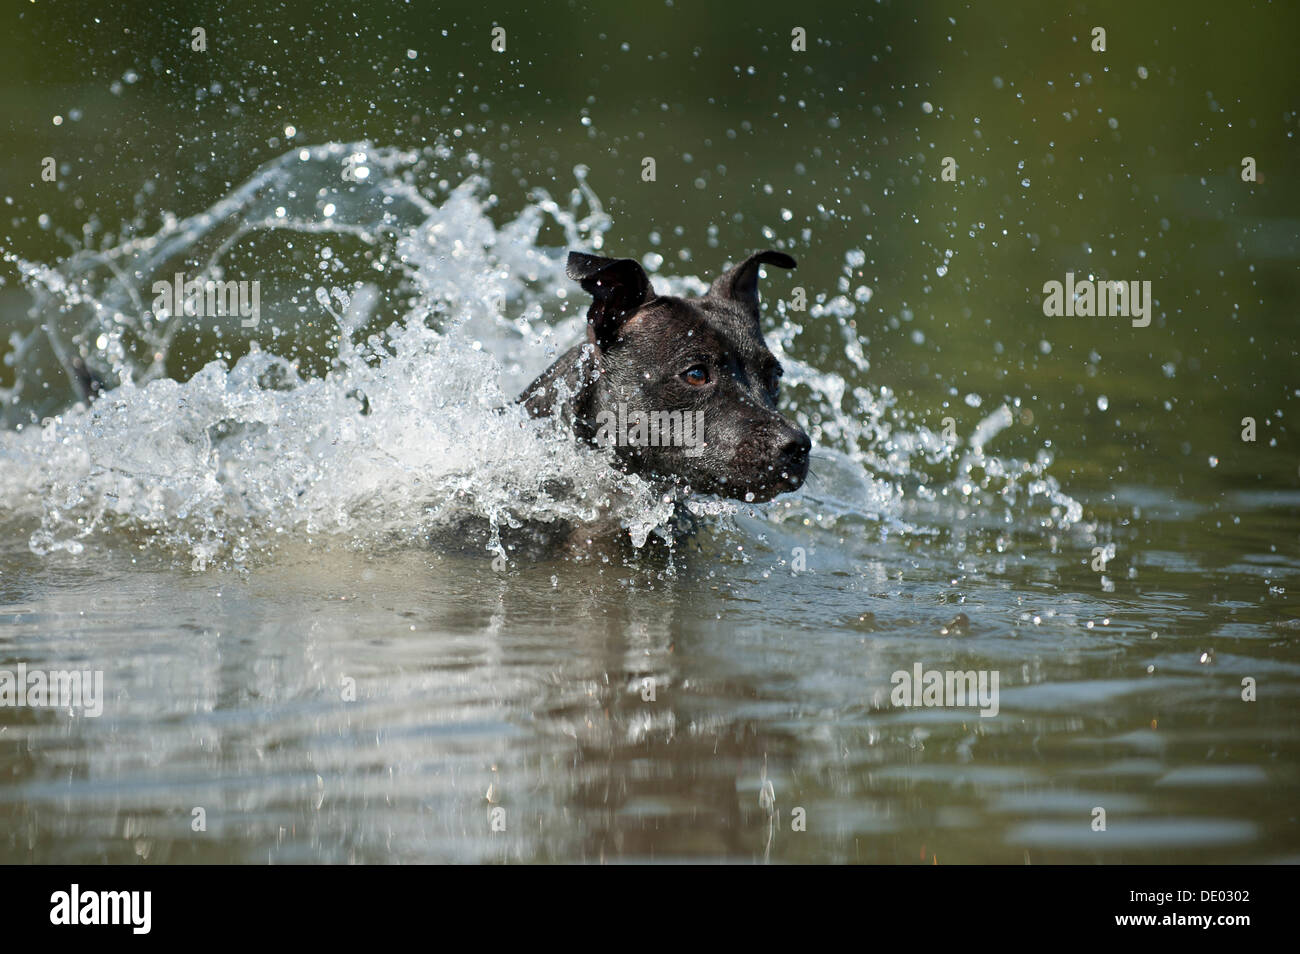 Old English Staffordshire Bull Terrier, dog jumping into the water - Stock Image